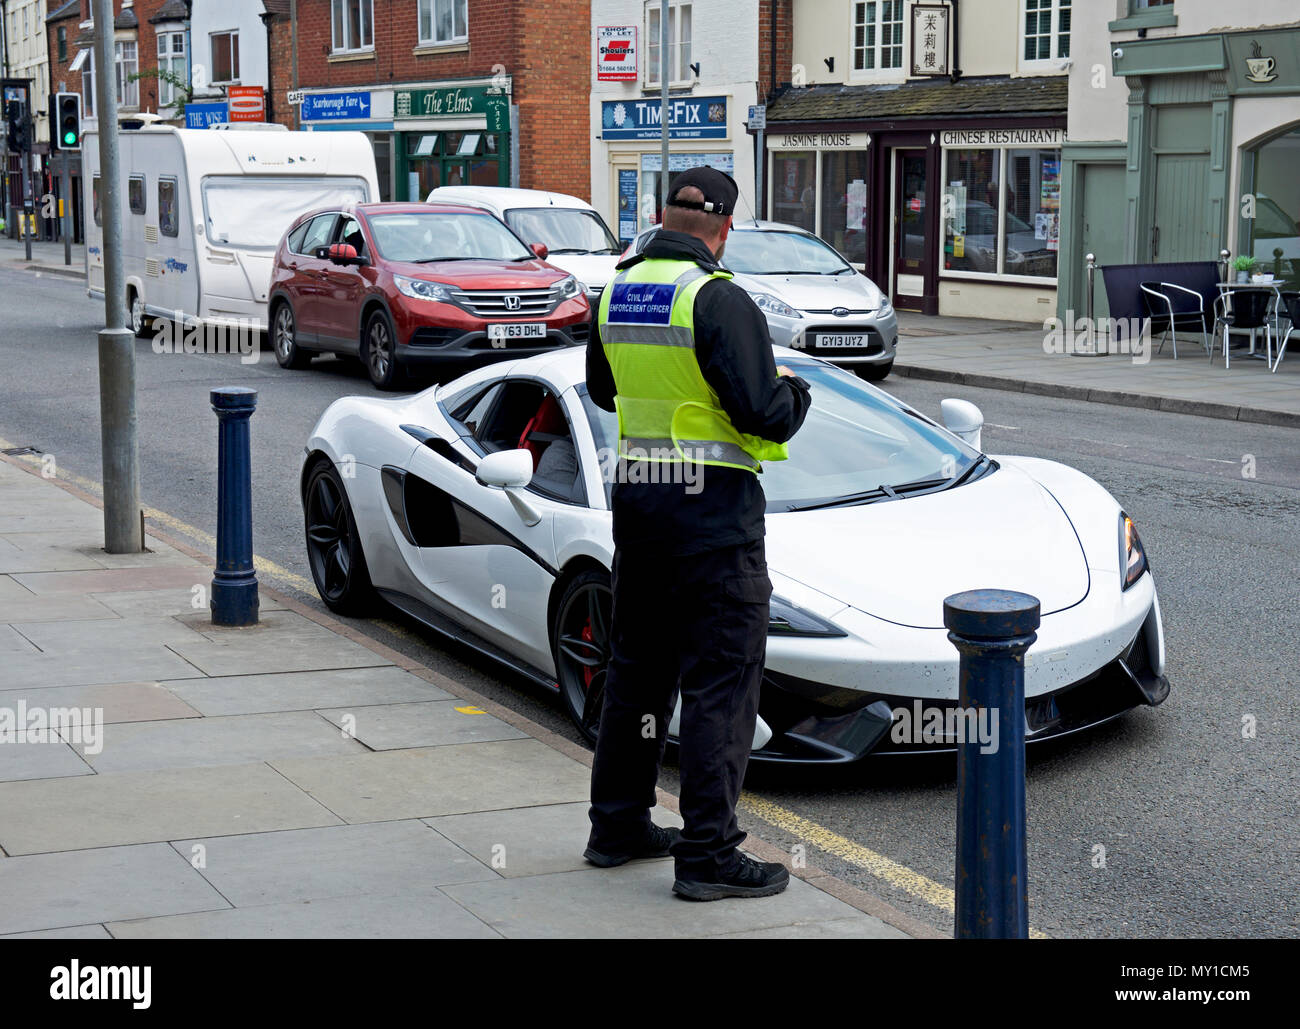 Traffic warden and sports car, parked on street, England UK - Stock Image